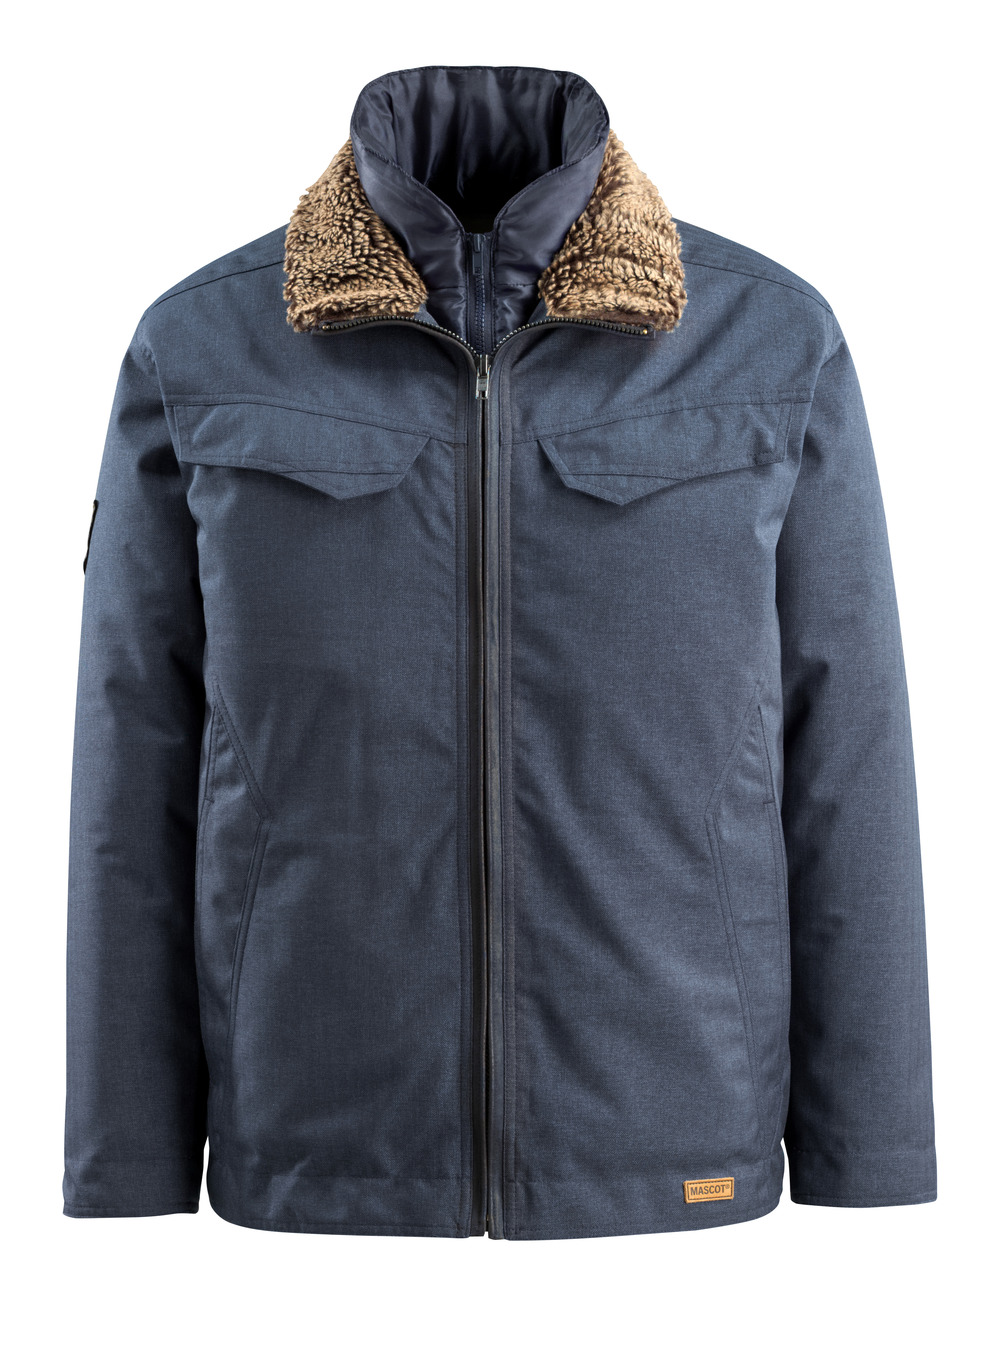 15435-275-46 Winter Jacket - indigo denim blue